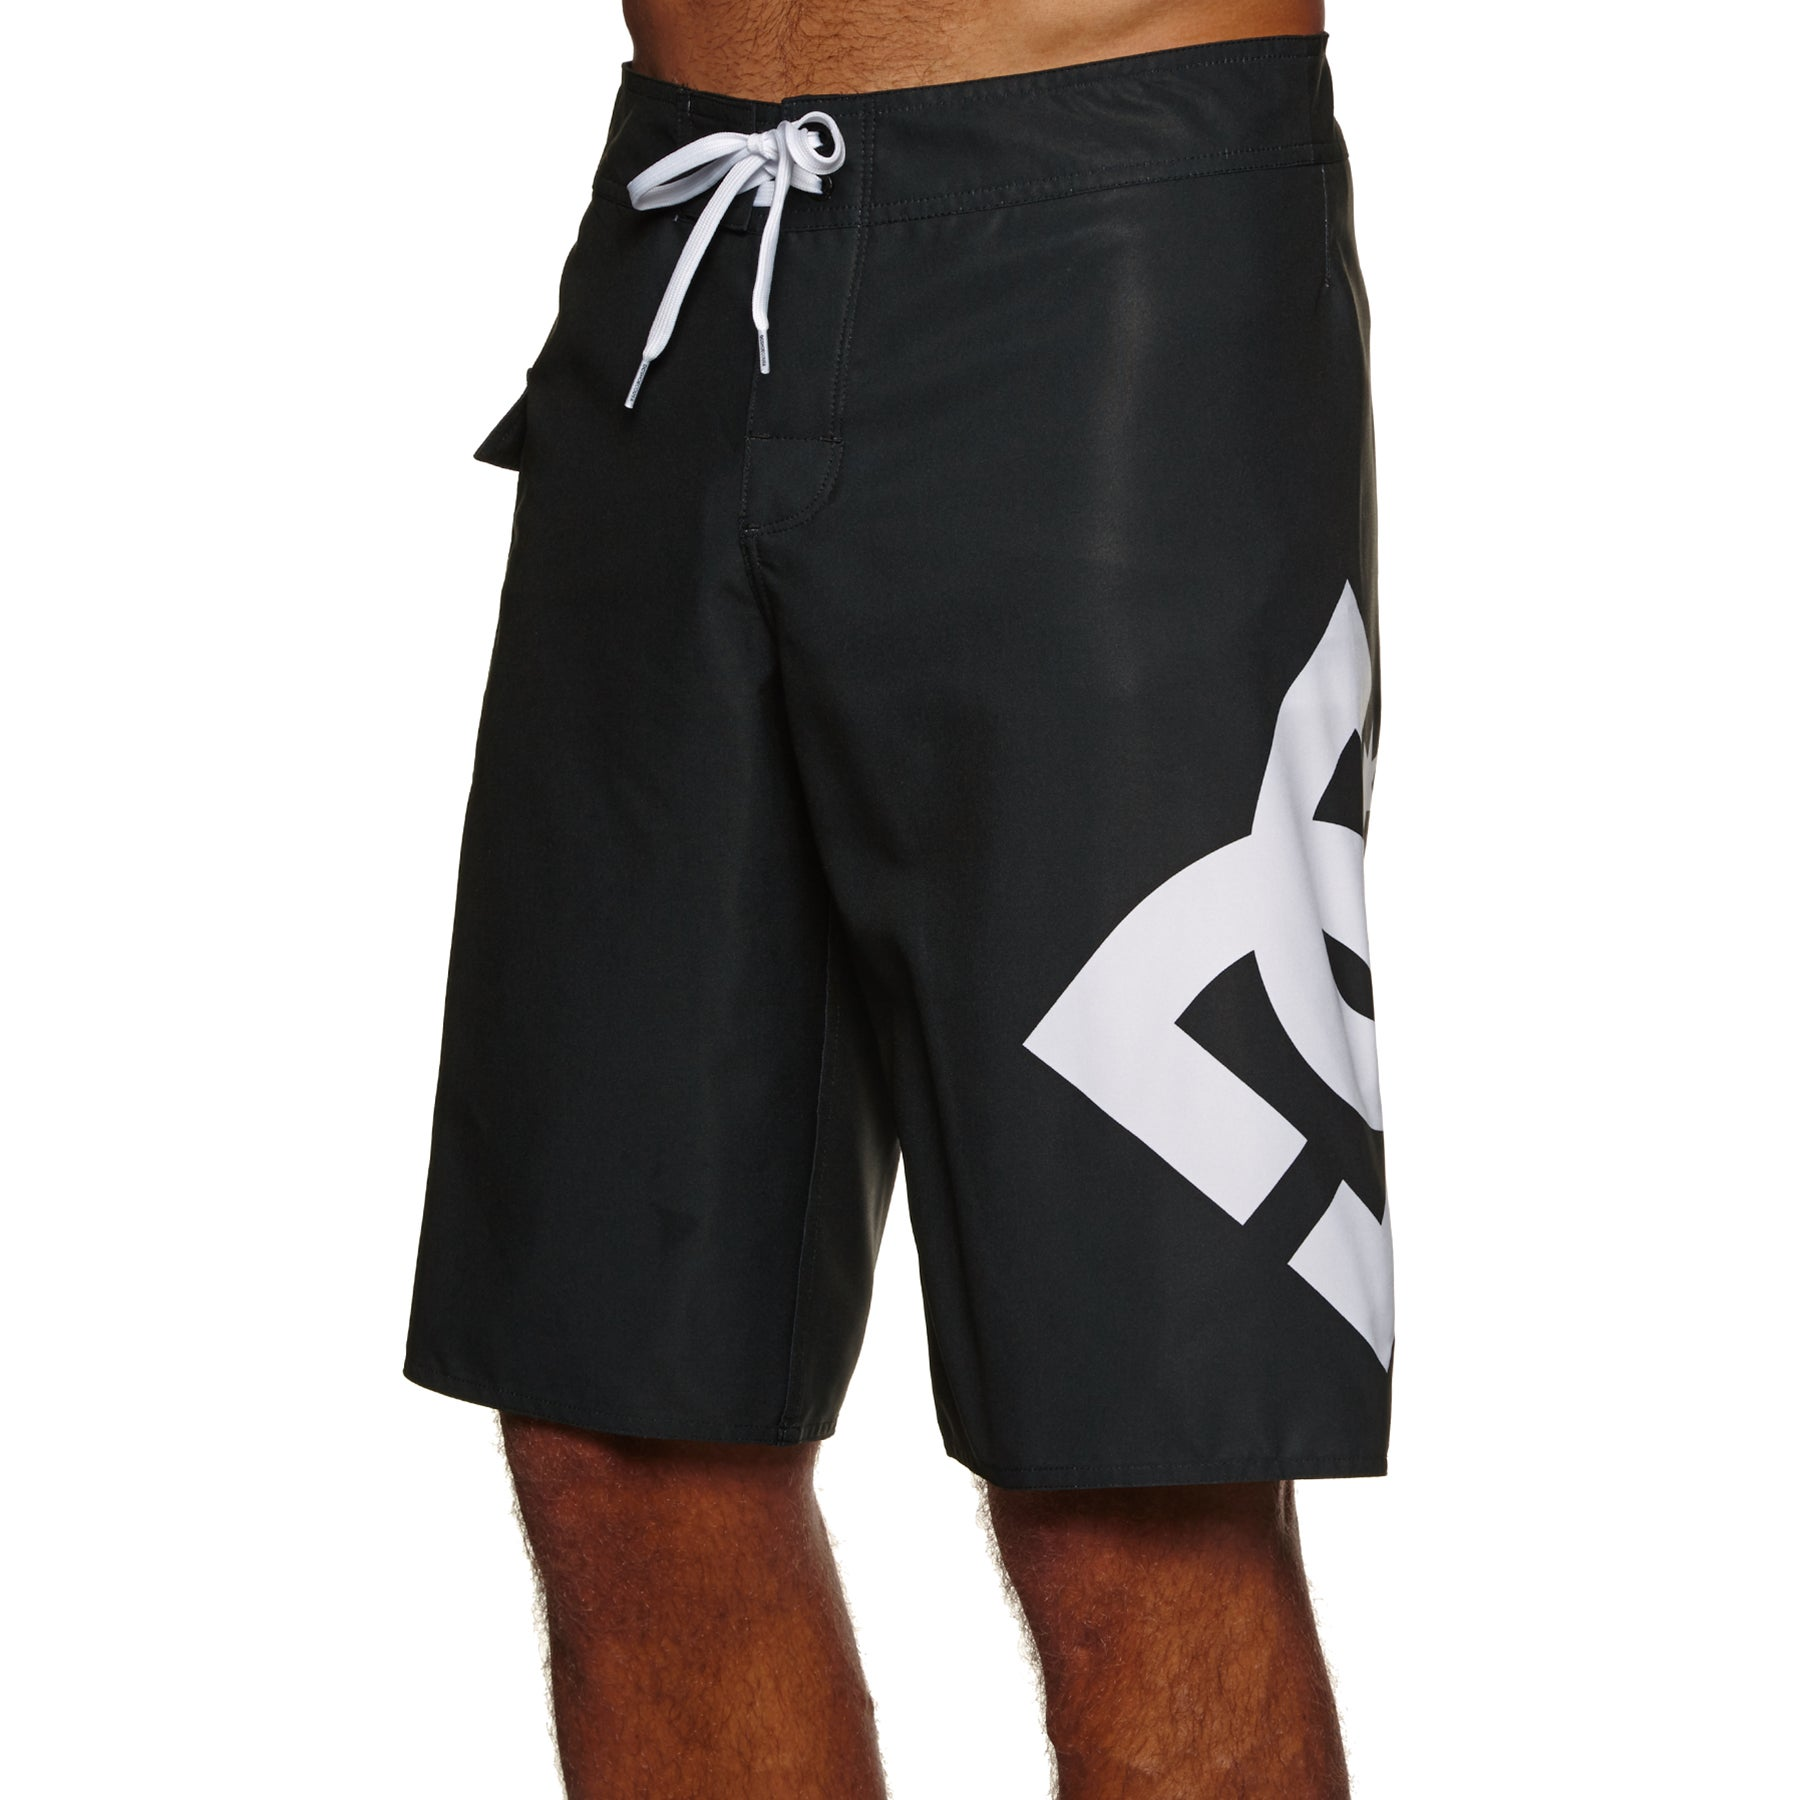 Dc From 22 Available Boardshorts Surfdome Lanai 5qc4ARj3L